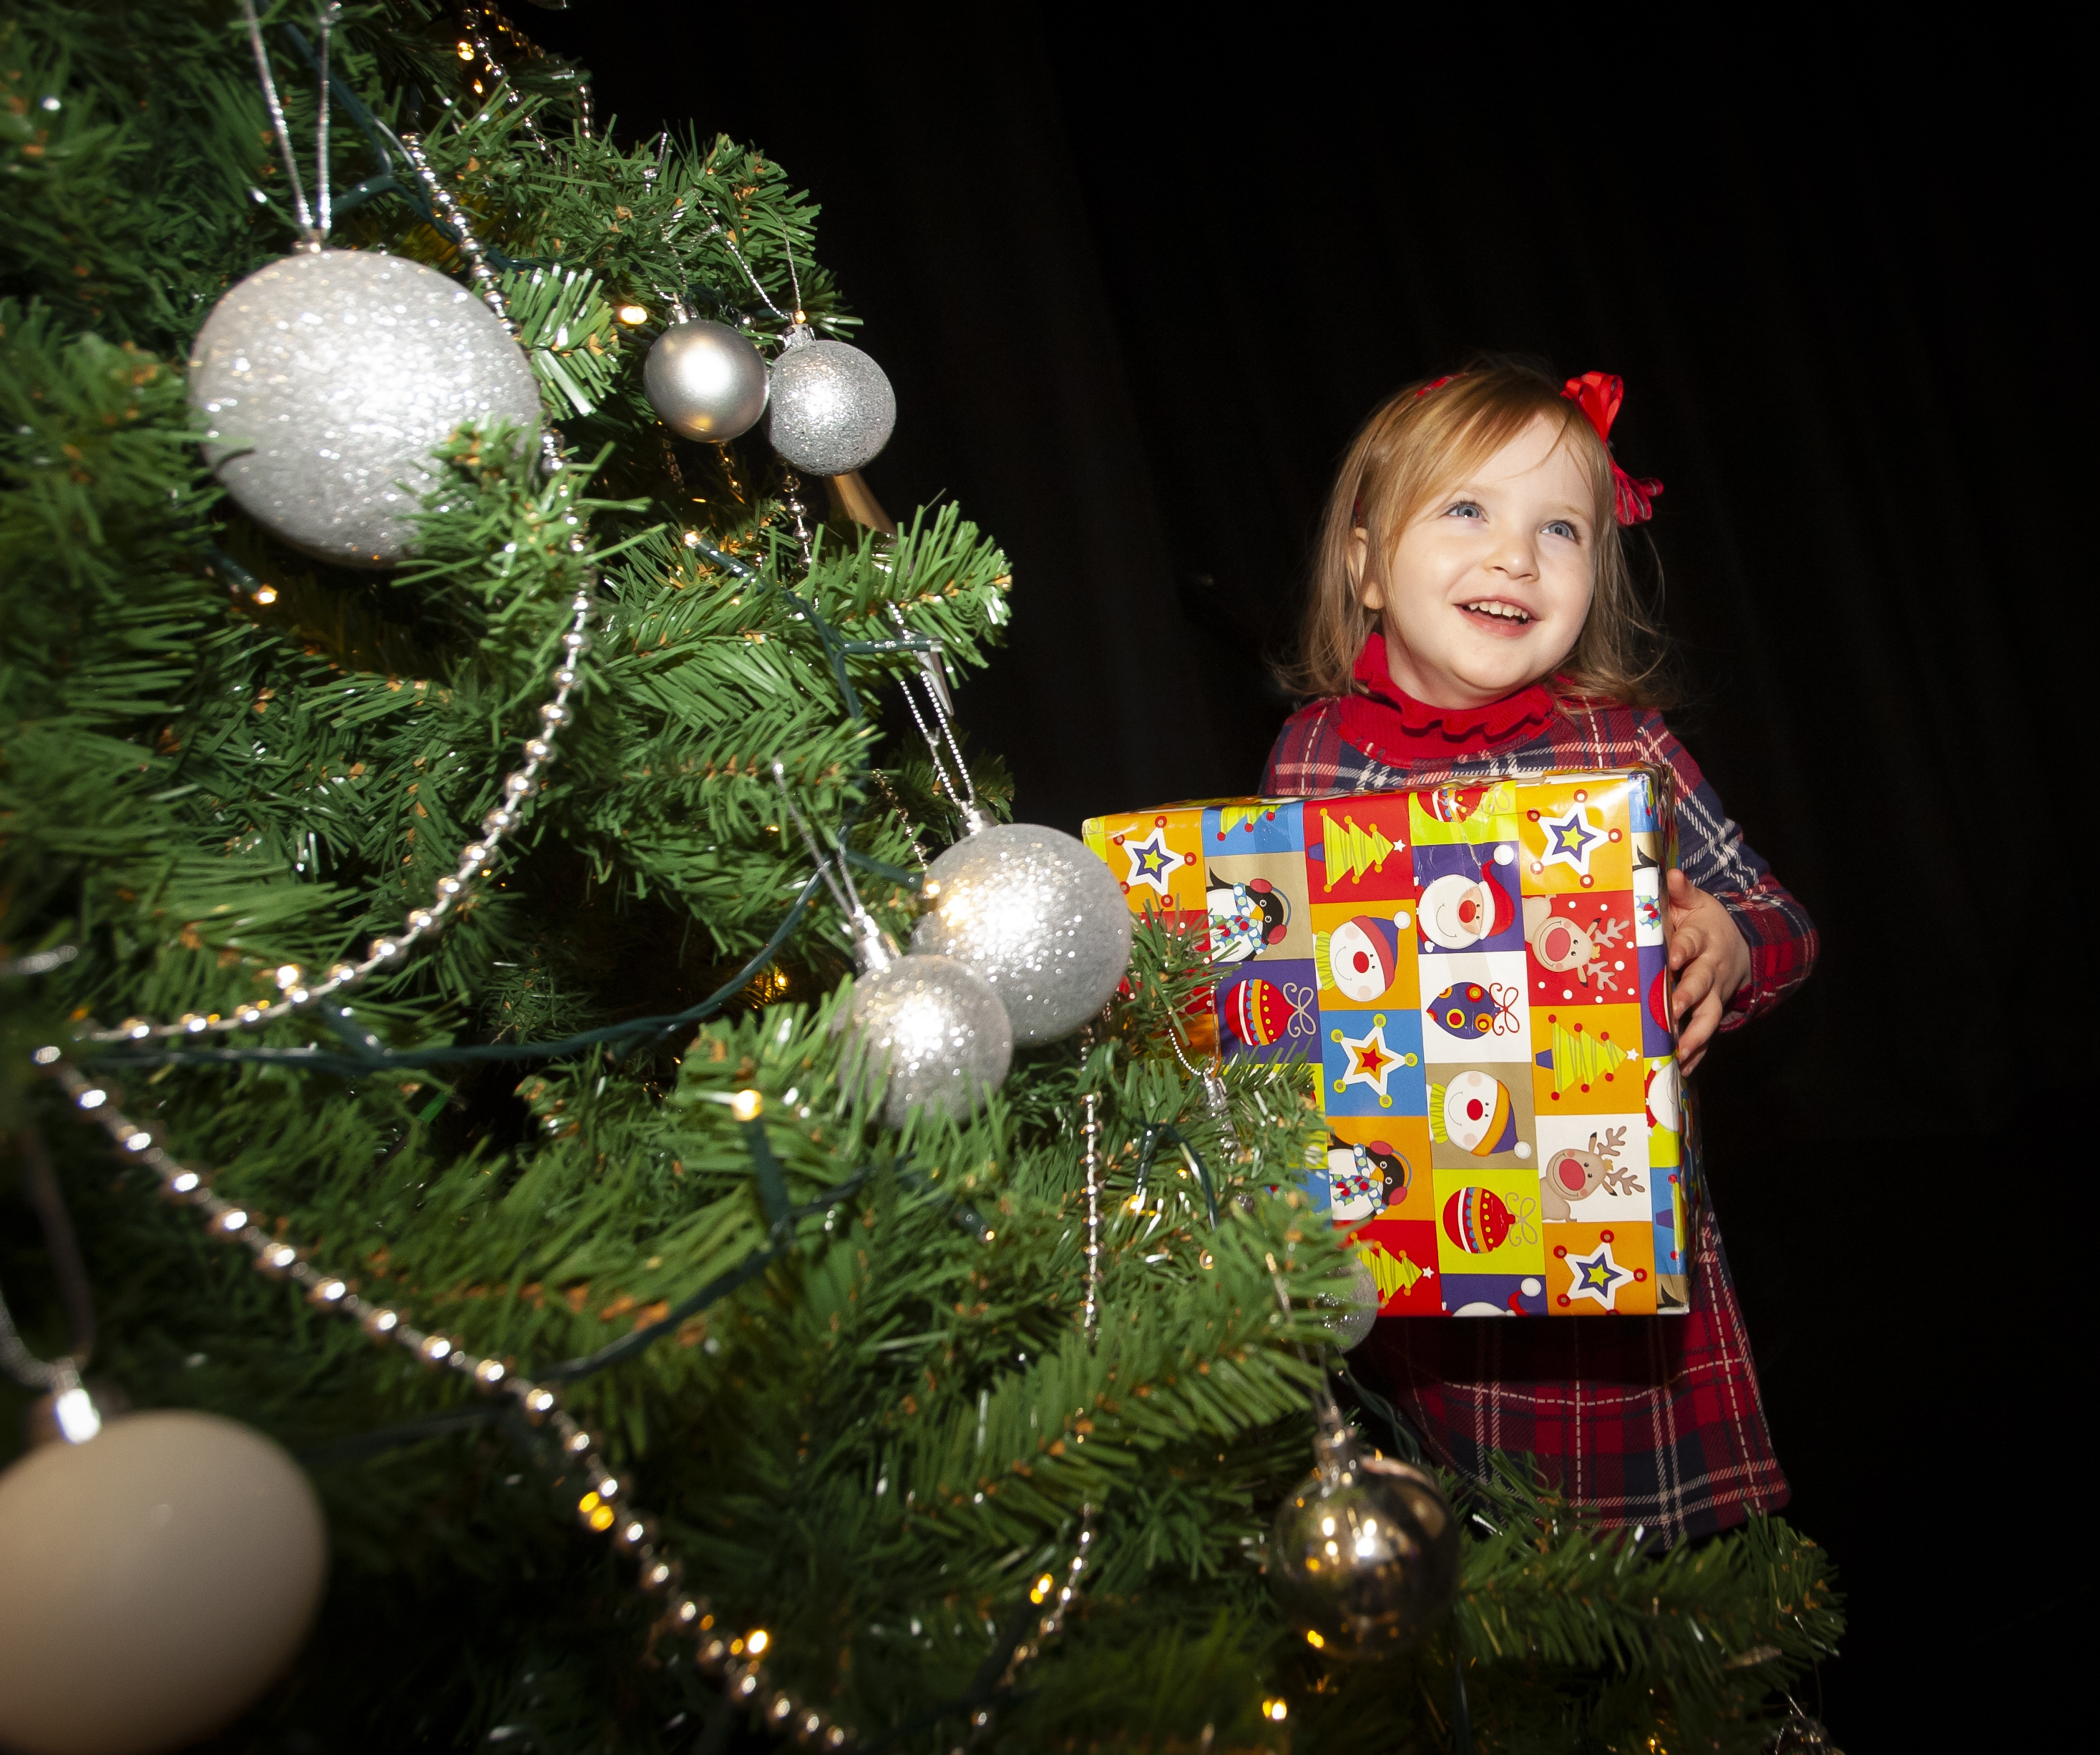 Playing 'Hide and Seek' with the photographer during Saturday's St. Mary's Annual Christmas Craft Fair is little Miss Clara Grace Kelly (3). Photos: Jim McCafferty Photography